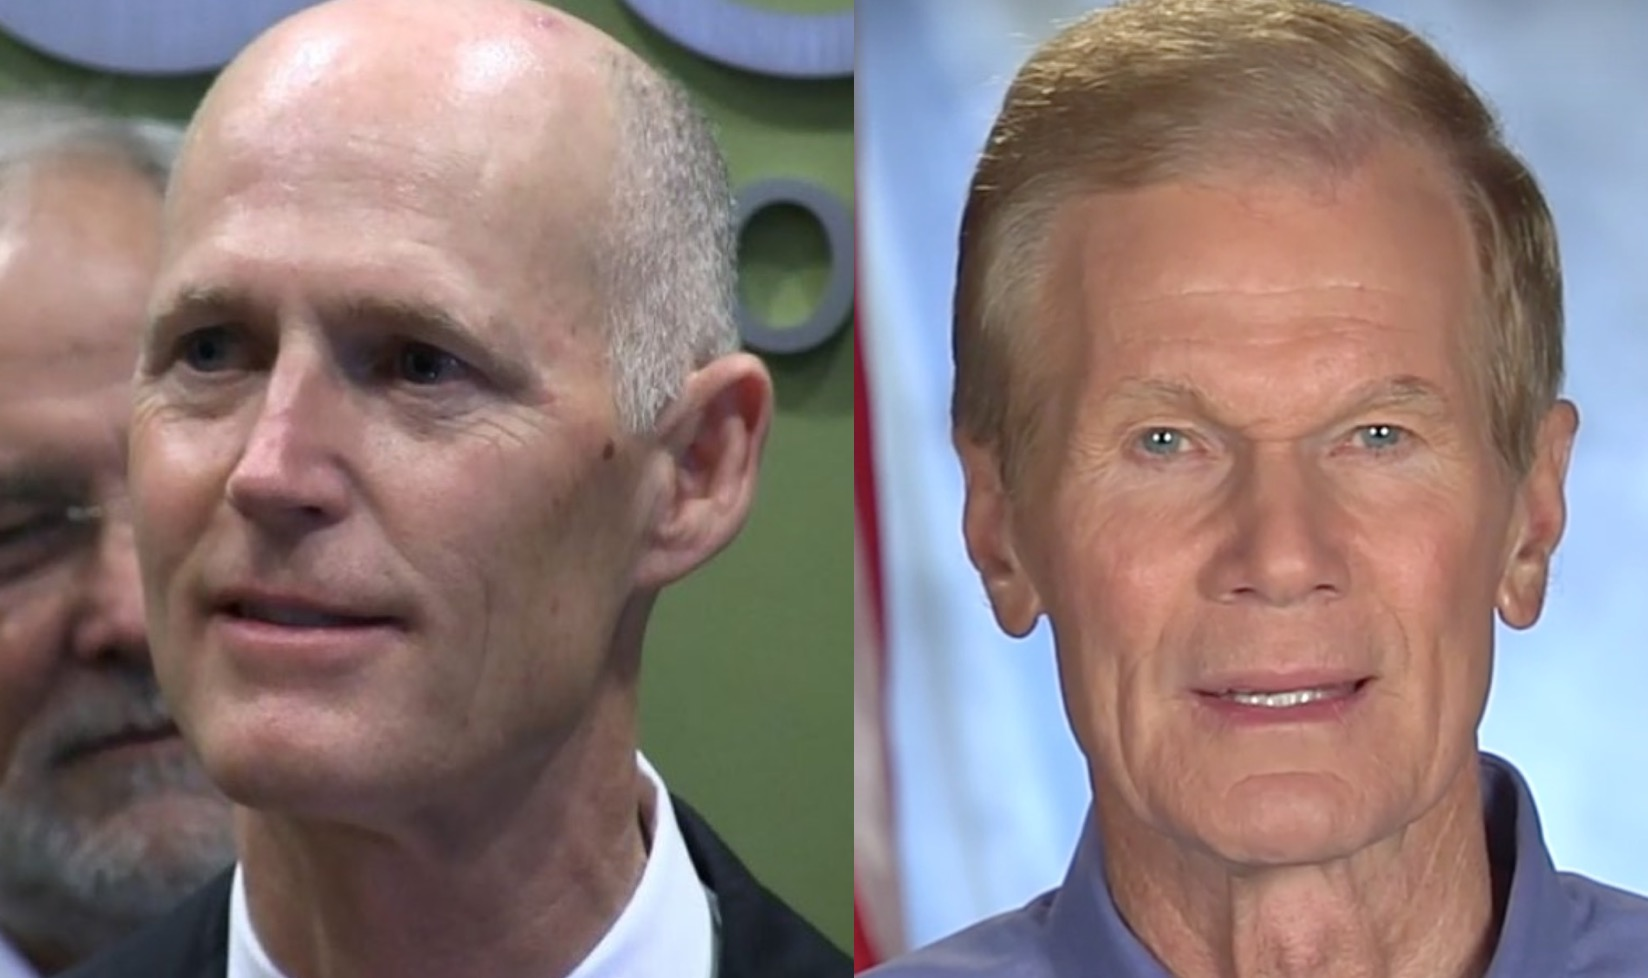 Scott edging out Nelson in Florida's U.S. Senate race